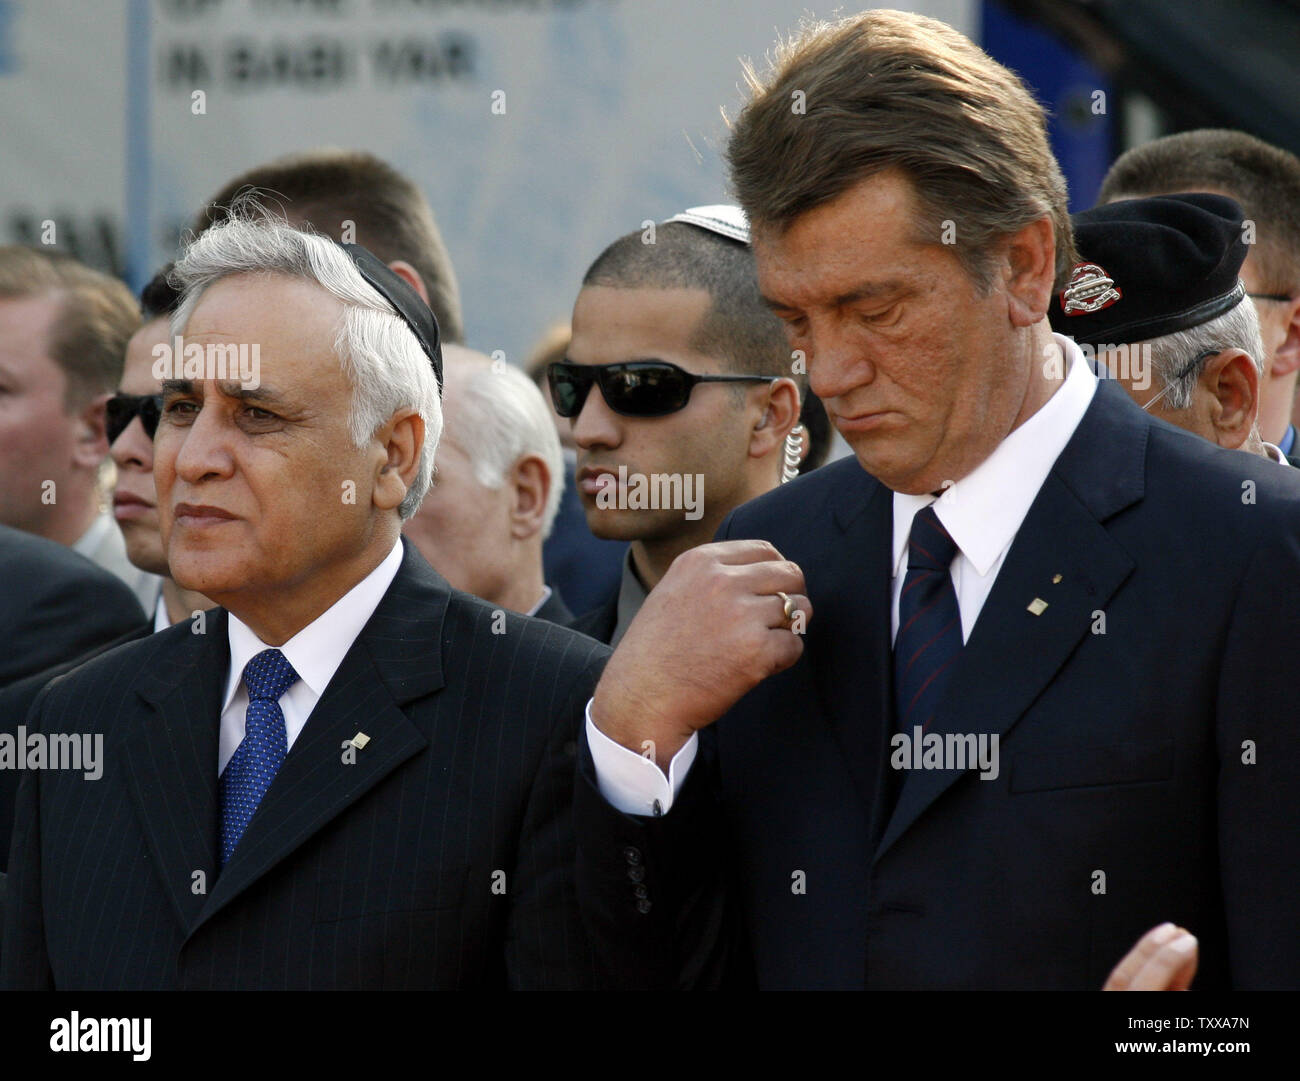 Ukraine's President Viktor Yushchenko (R) crosses himself as he attends with Israeli President Moshe Katsav a wreath laying ceremony at a monument commemorating the victims of the Nazi massacre in Babiy Yar, in Kiev on September 27, 2006. Ukraine marks this week the 65th anniversary of the Babiy Yar tragedy where tens of thousands Jews were killed by Nazis.  (UPI Photo/Sergey Starostenko) - Stock Image